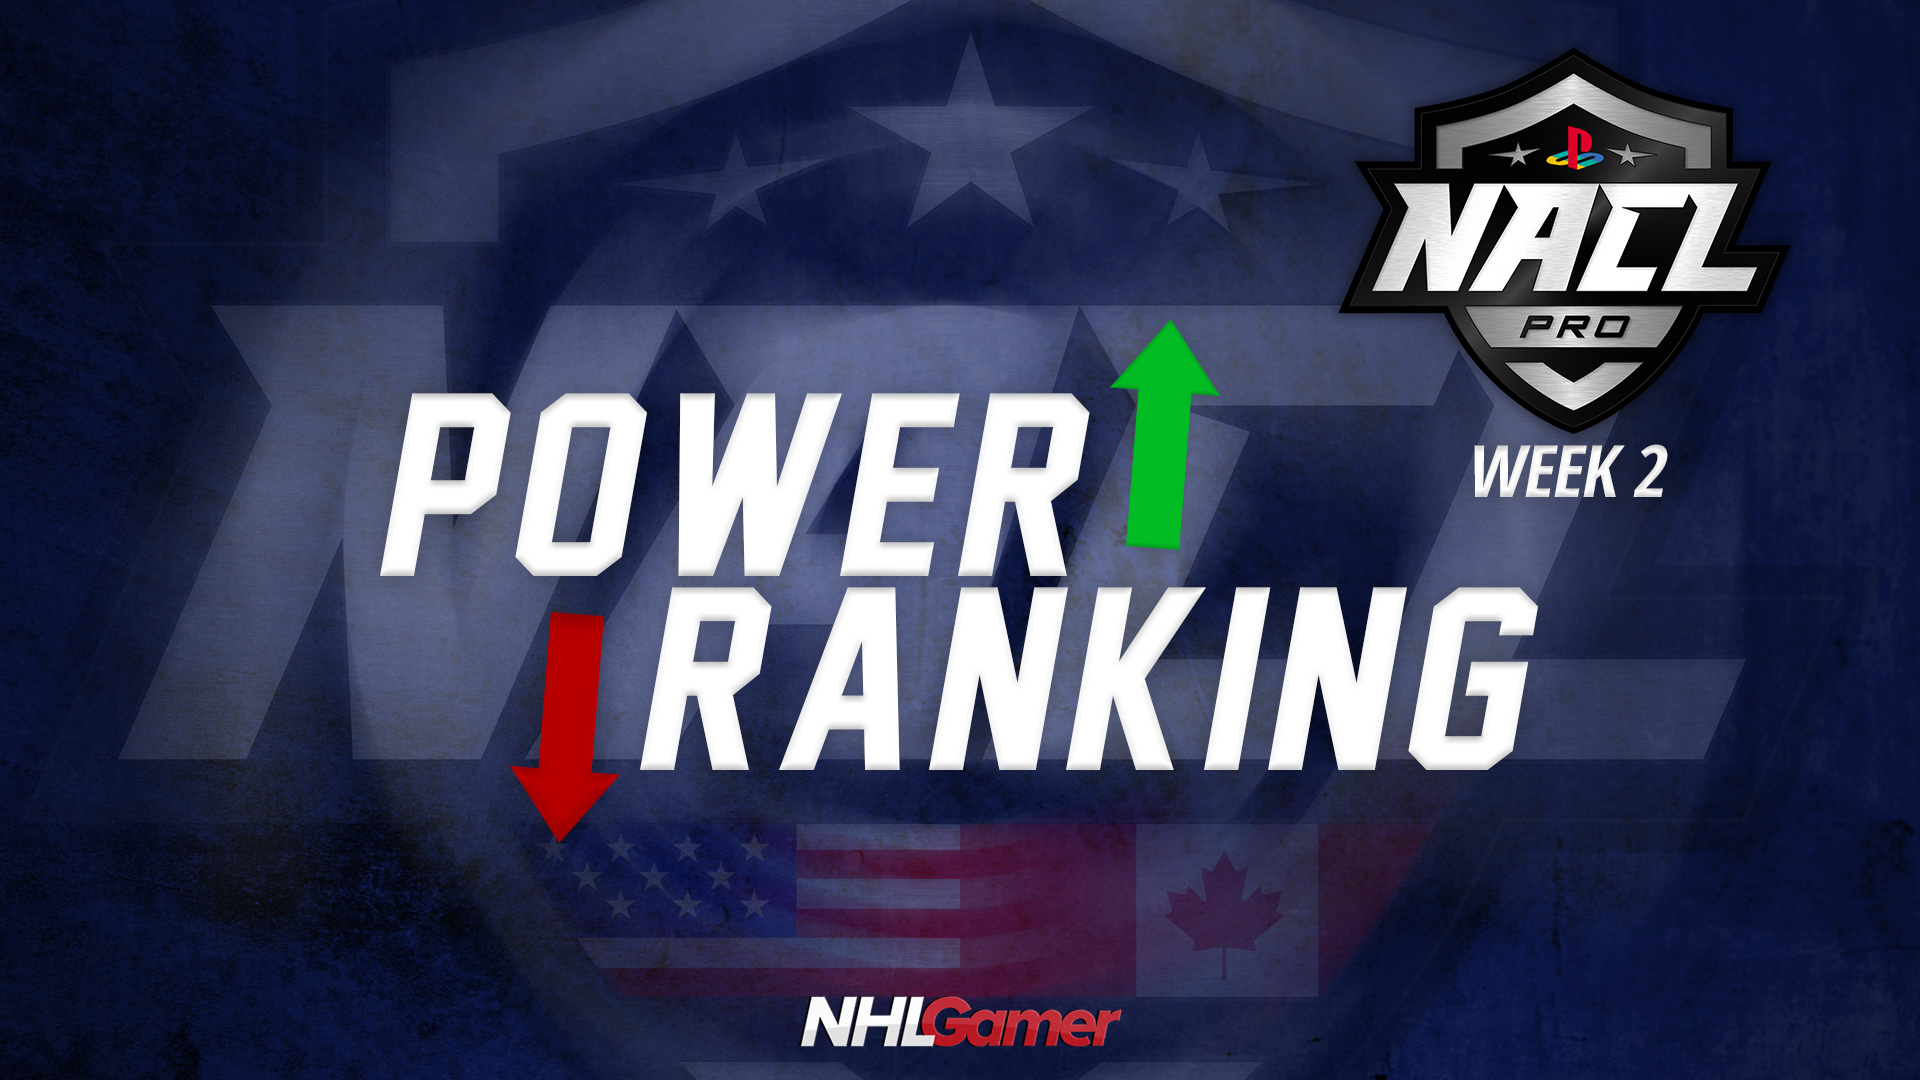 PS4_NACL_Pro_Power_Ranking_Week_2.jpg